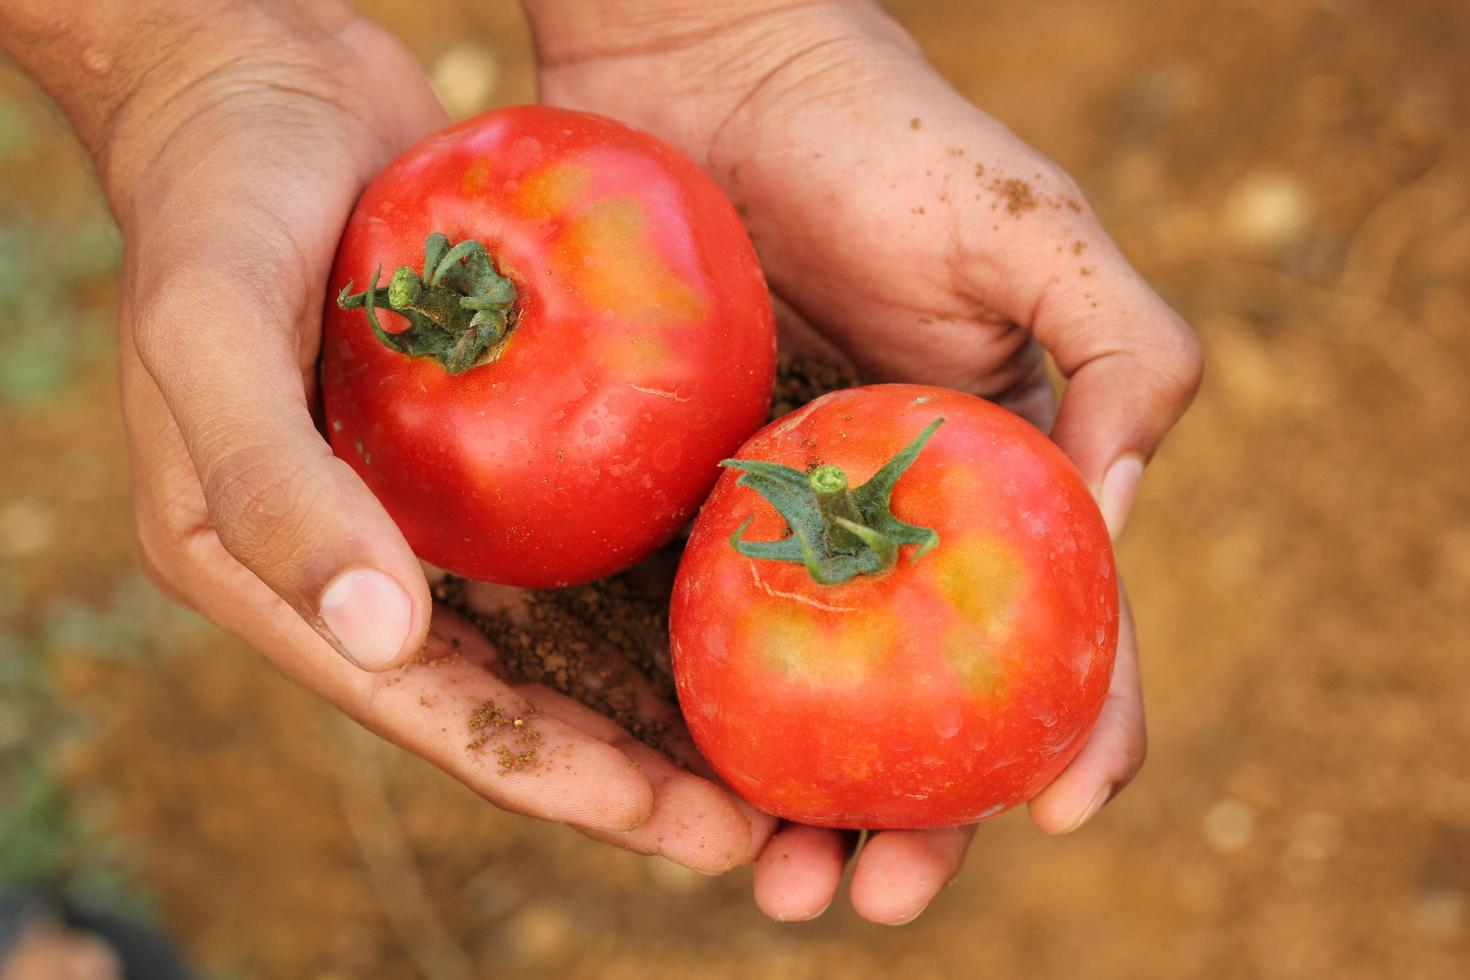 Person holding two ripe tomatoes photo